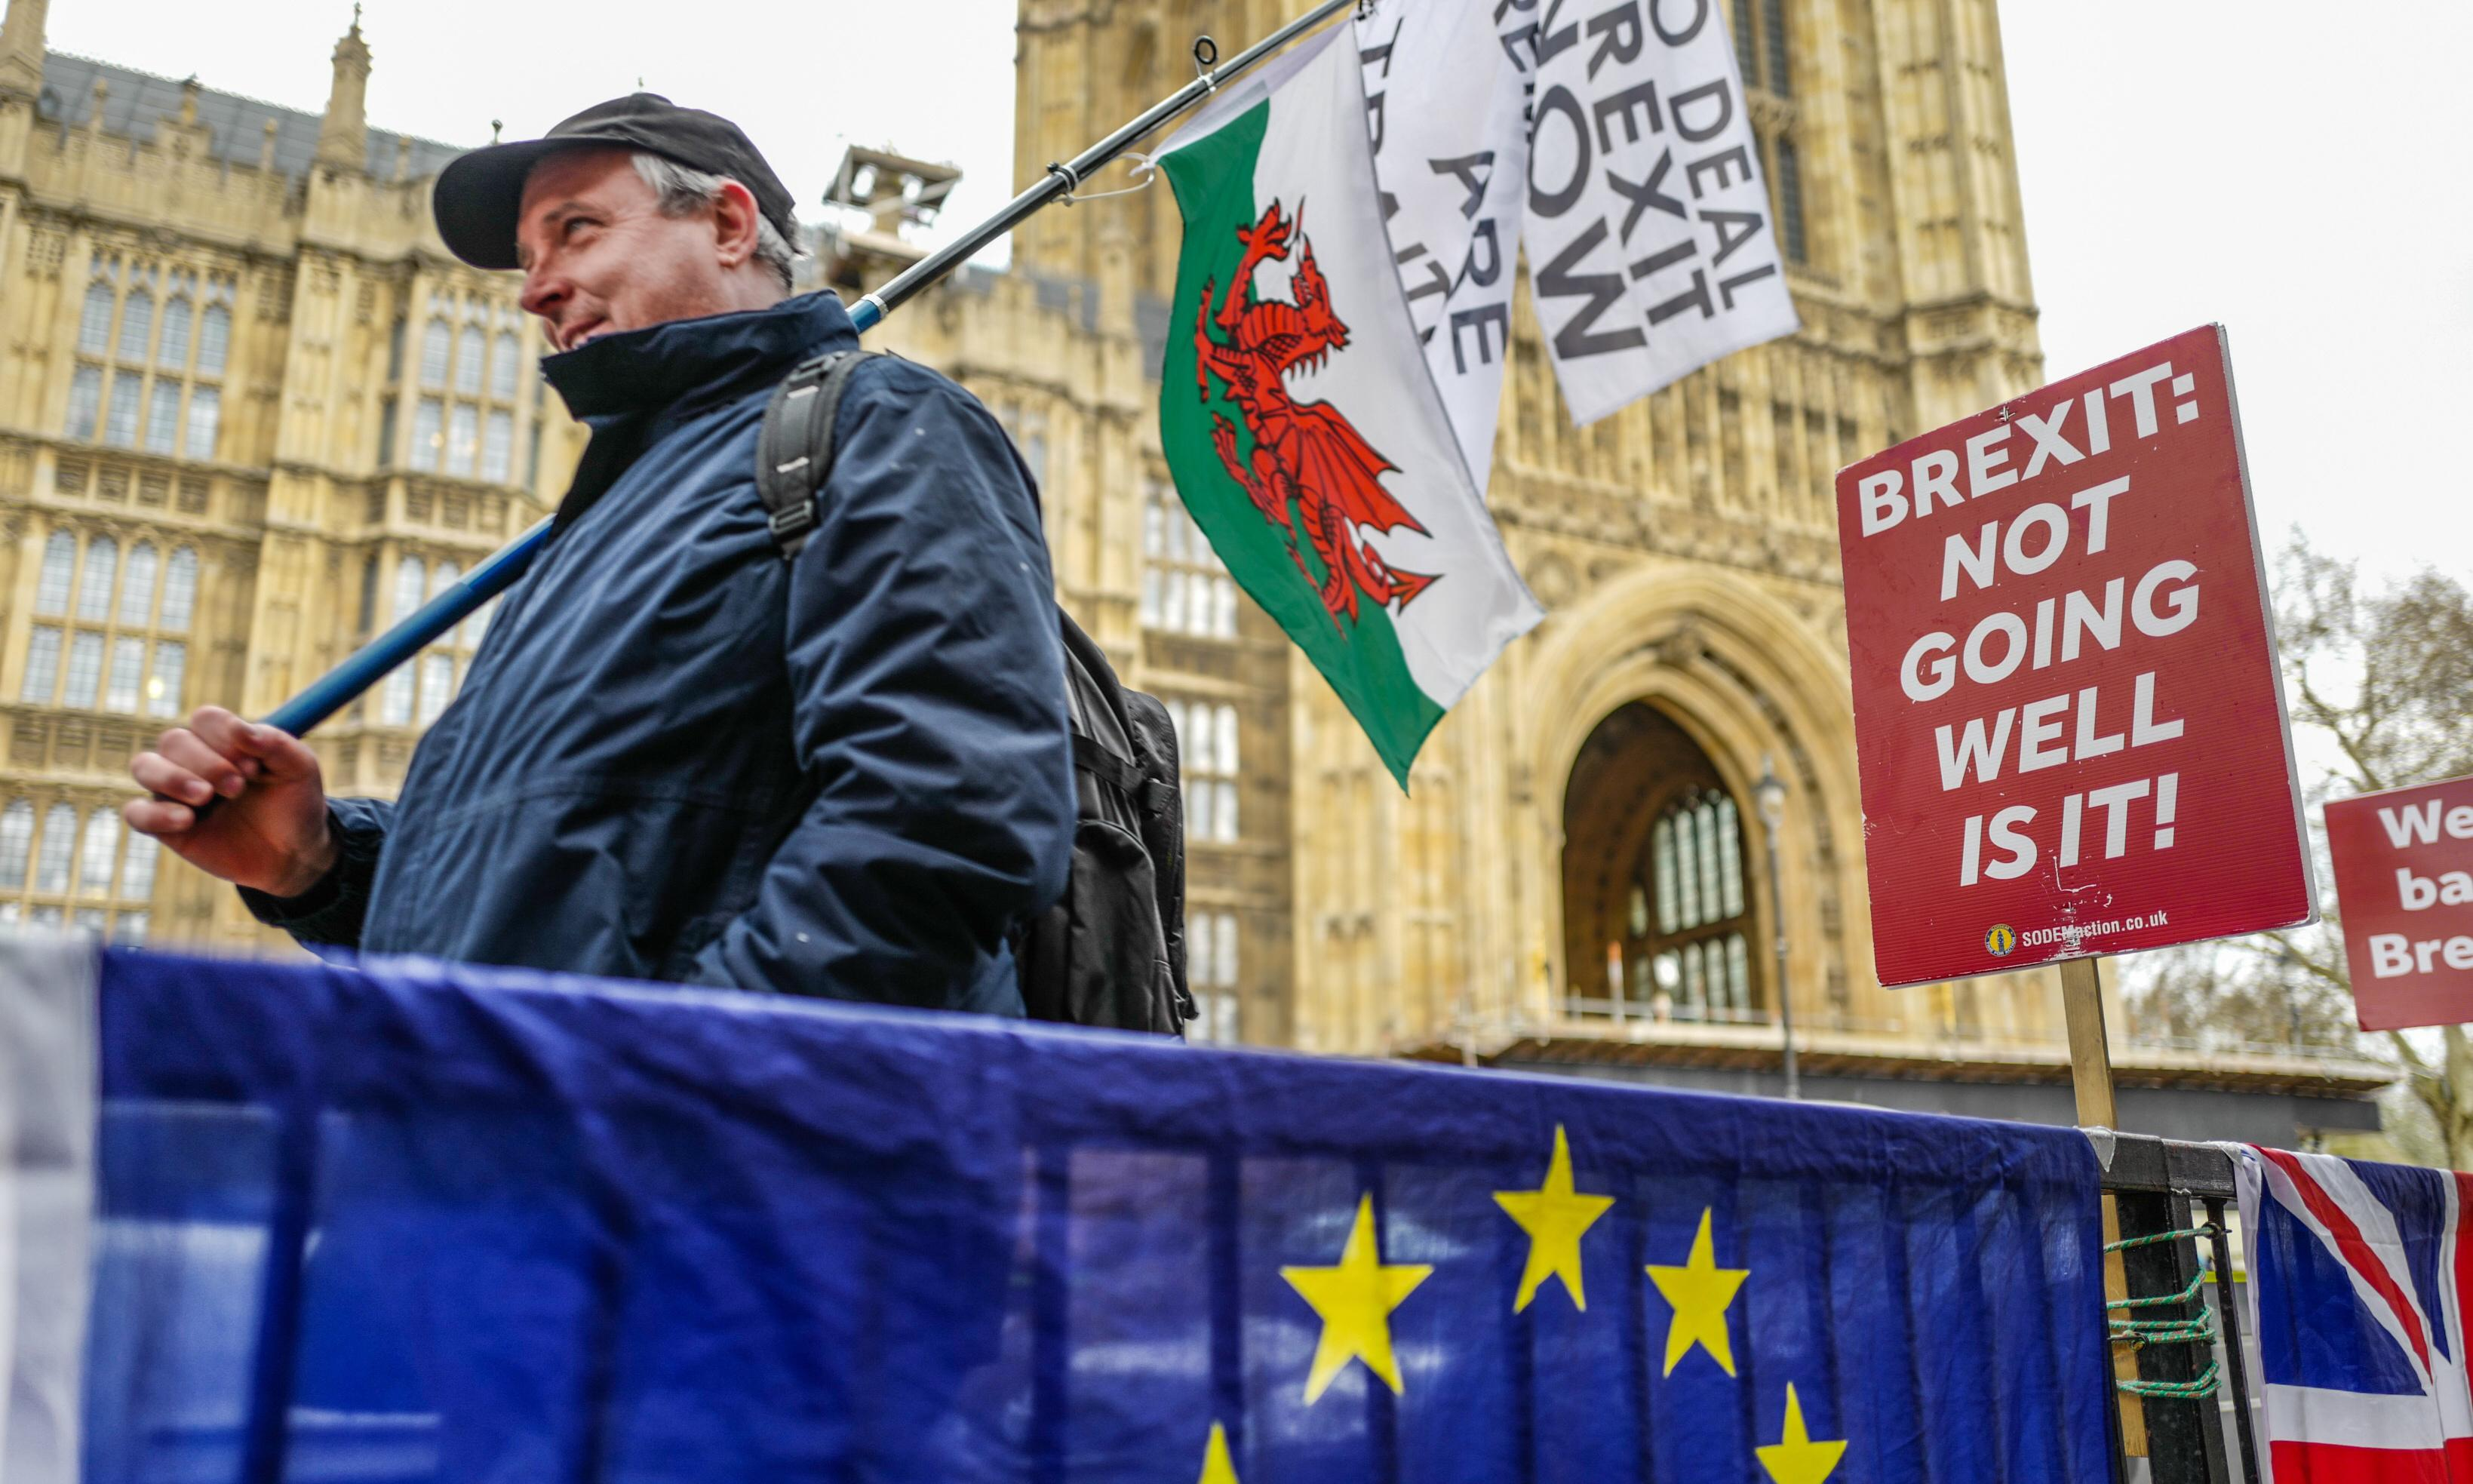 The Guardian view on the Brexit impasse: trust citizens to judge the evidence